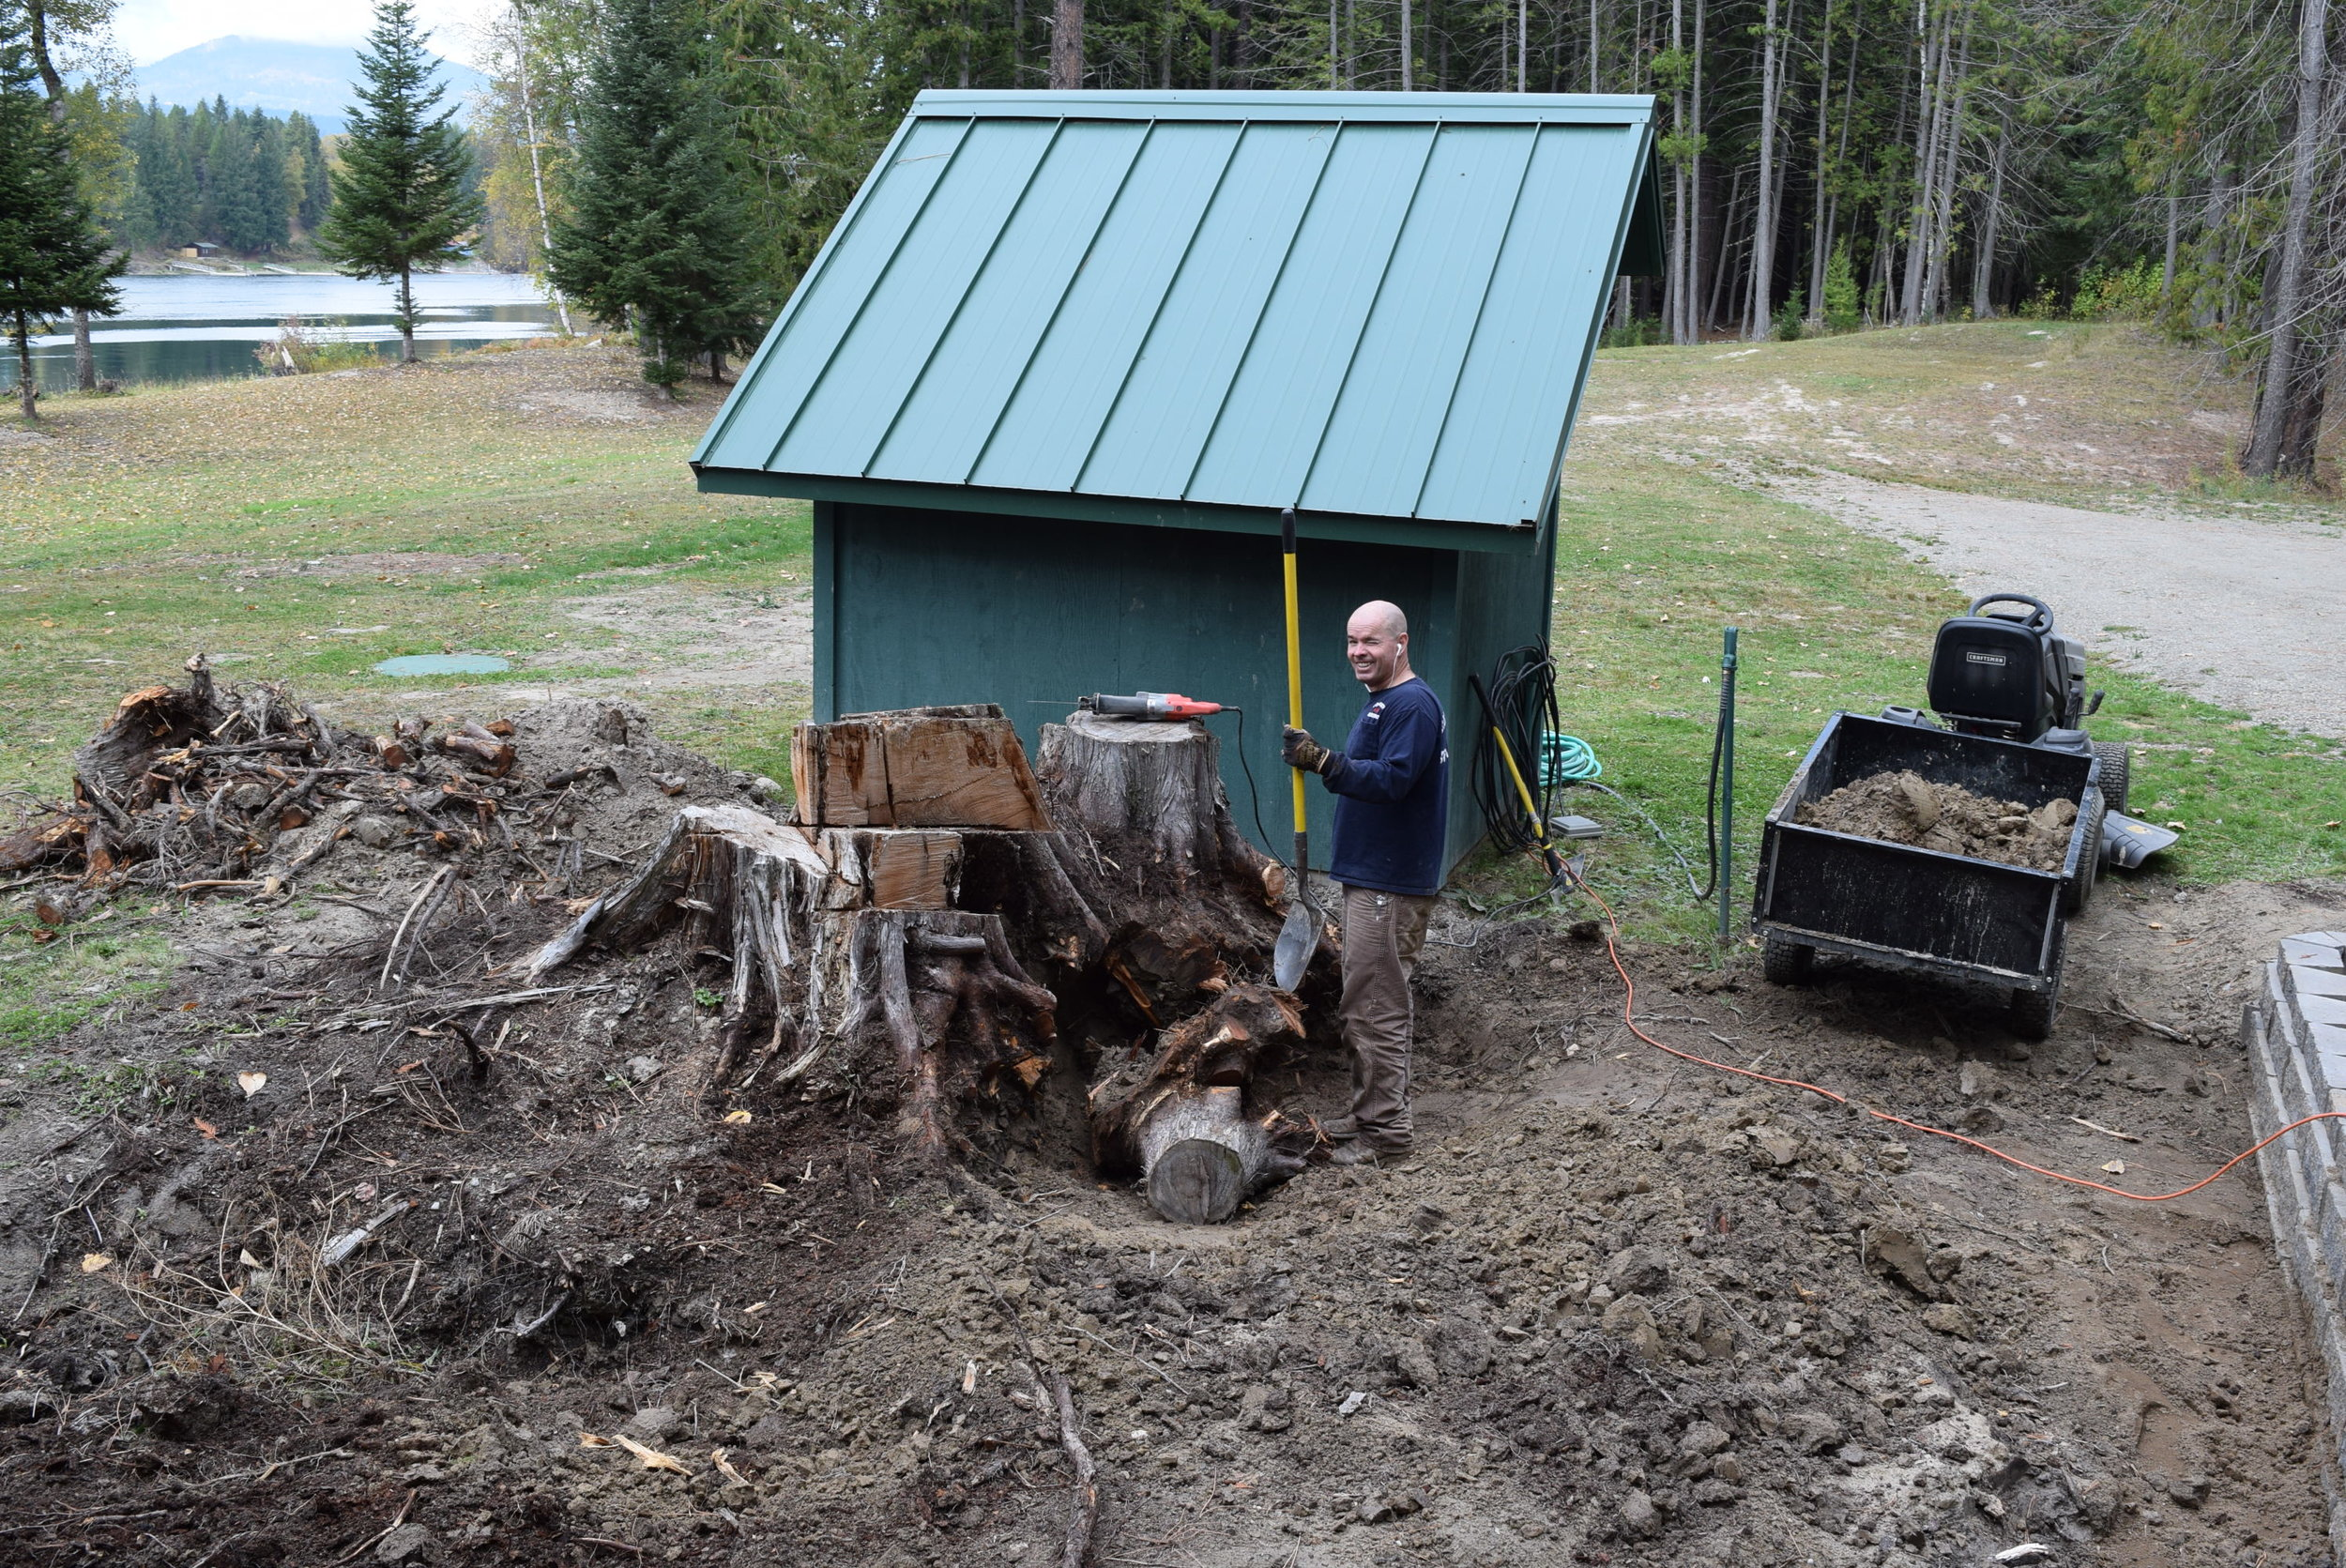 Paul digging out tree stumps by hand.